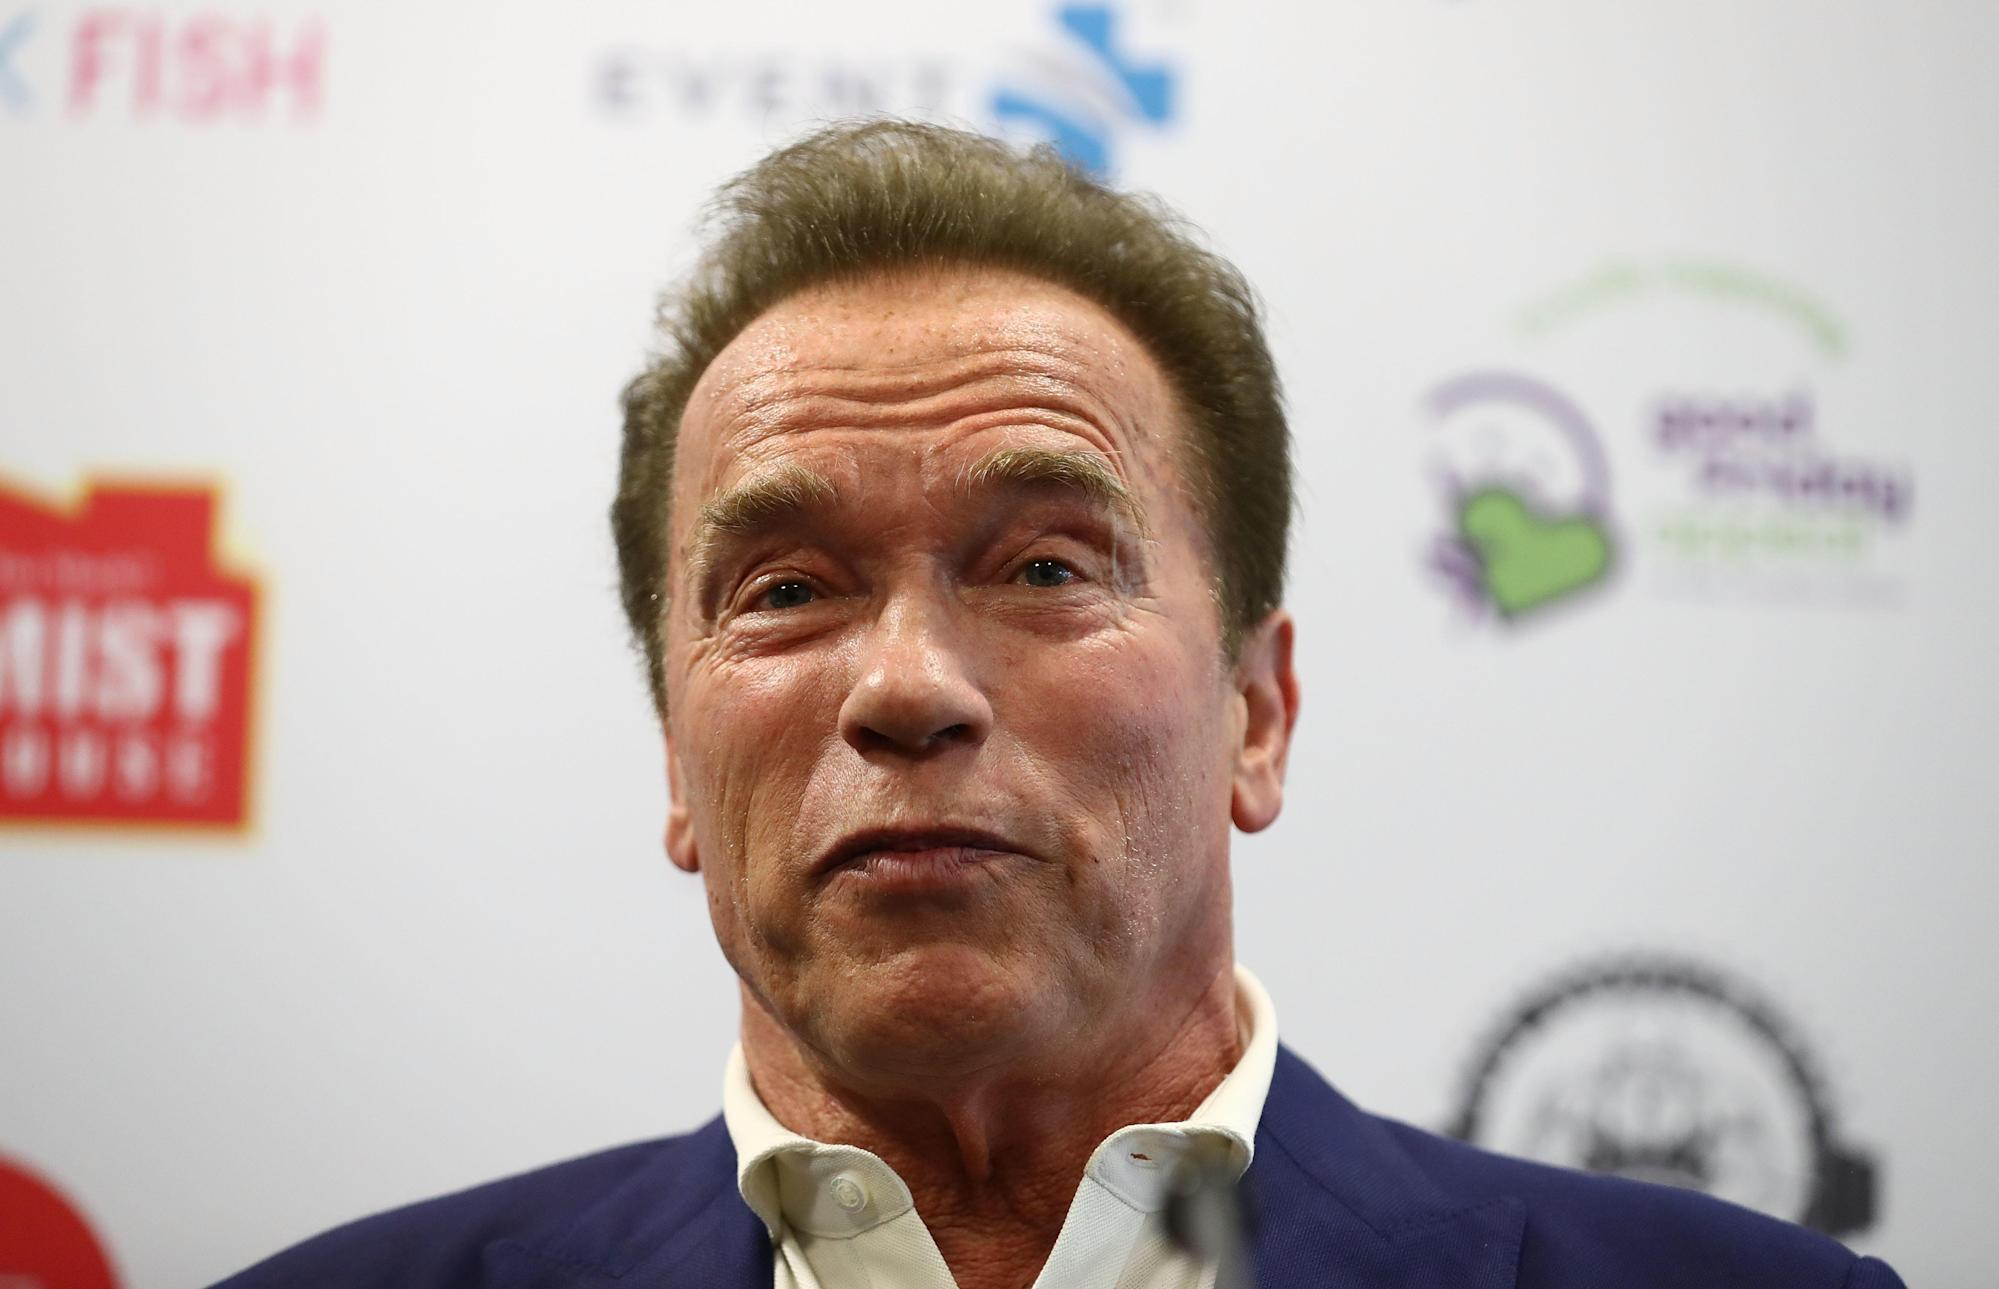 Schwarzenegger calls out people for ignoring COVID guidelines